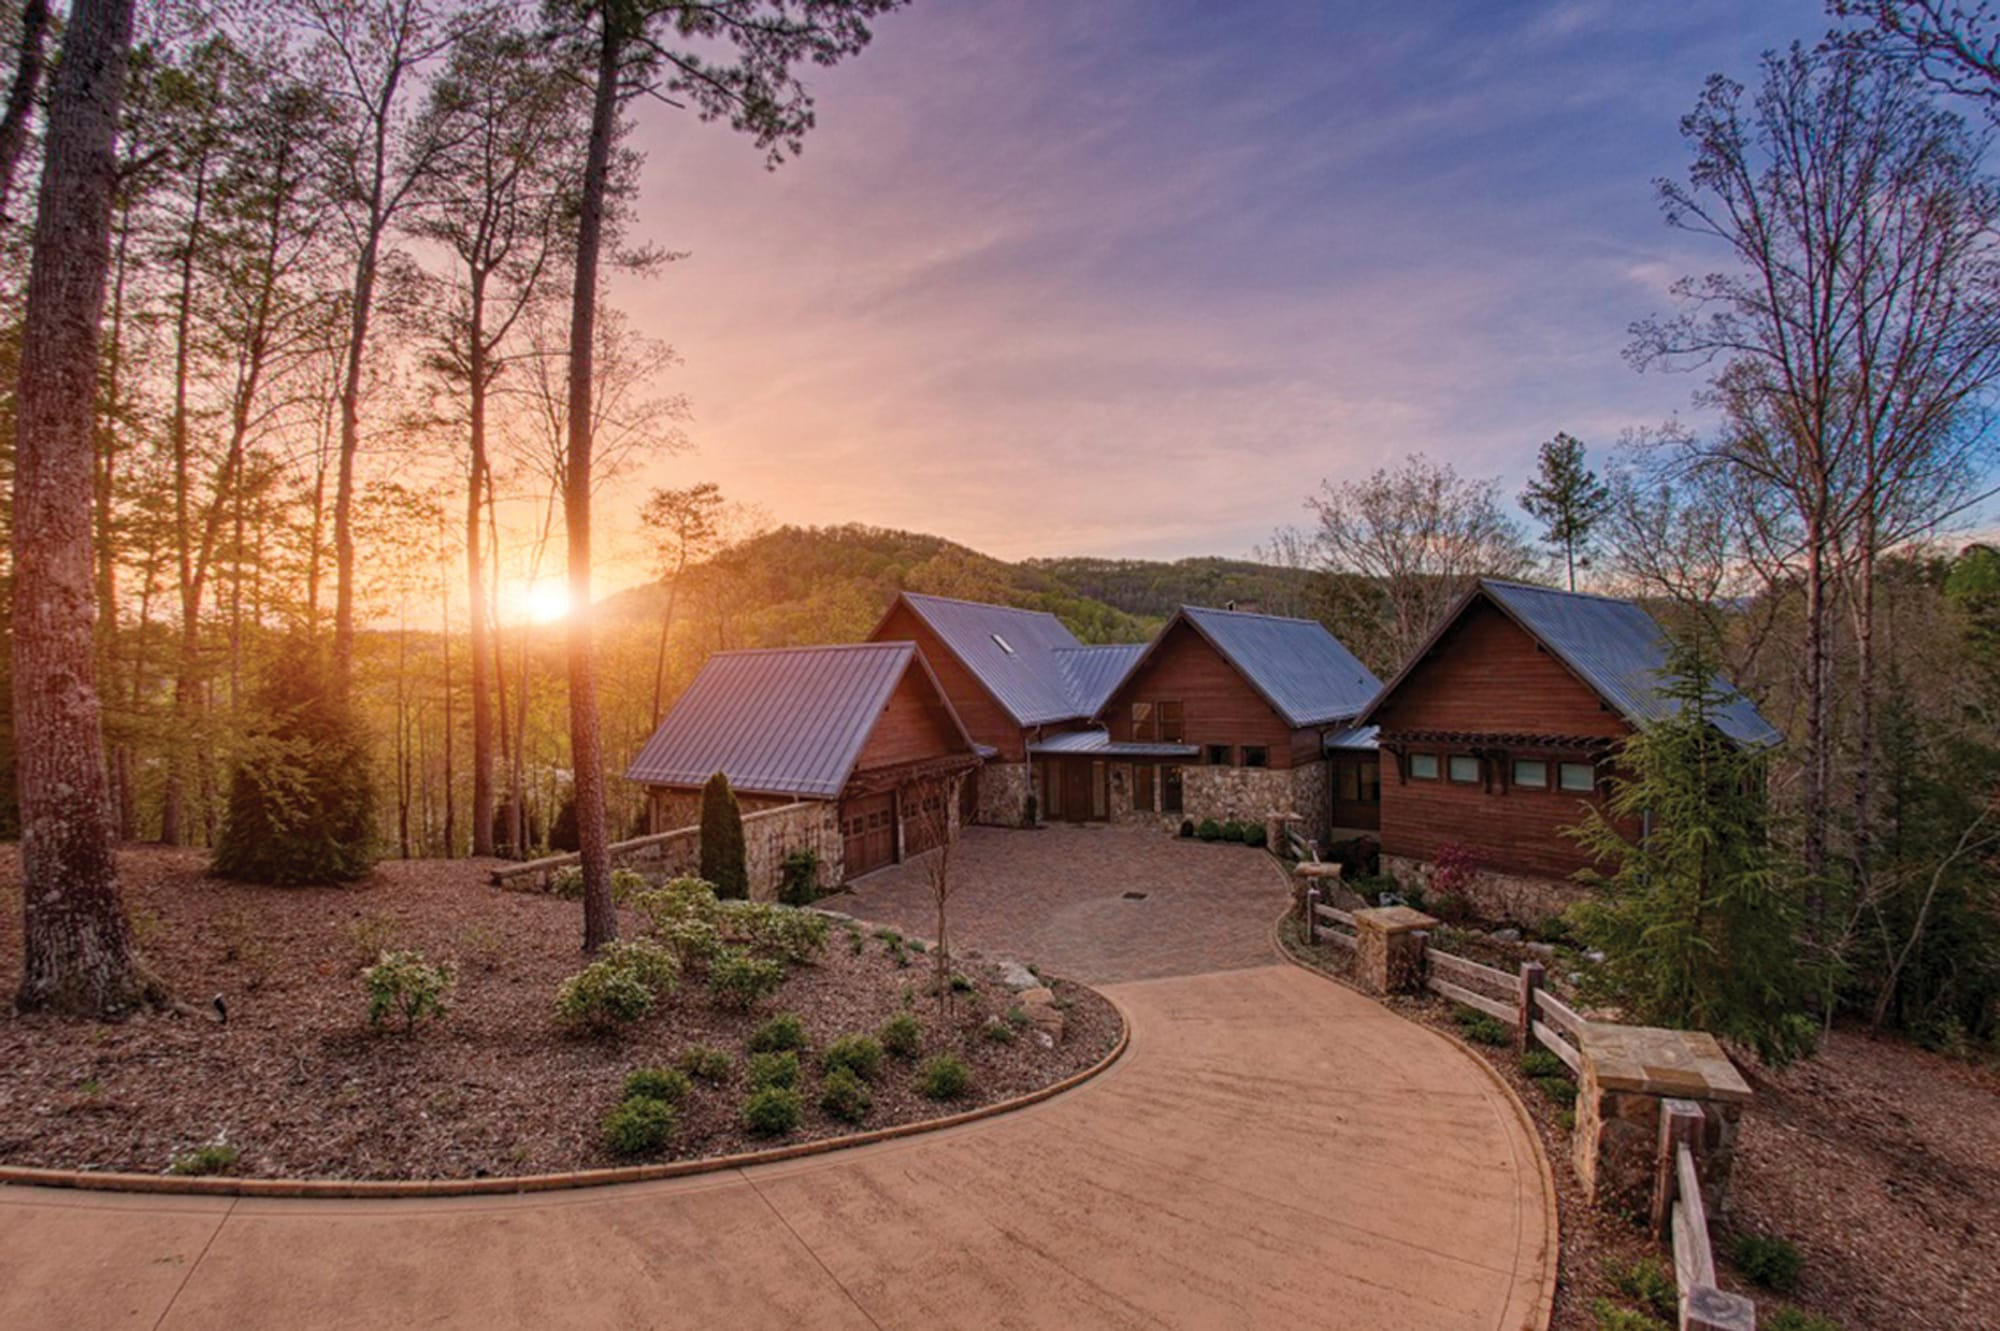 Sunrise Over Custom Home at The Cliffs